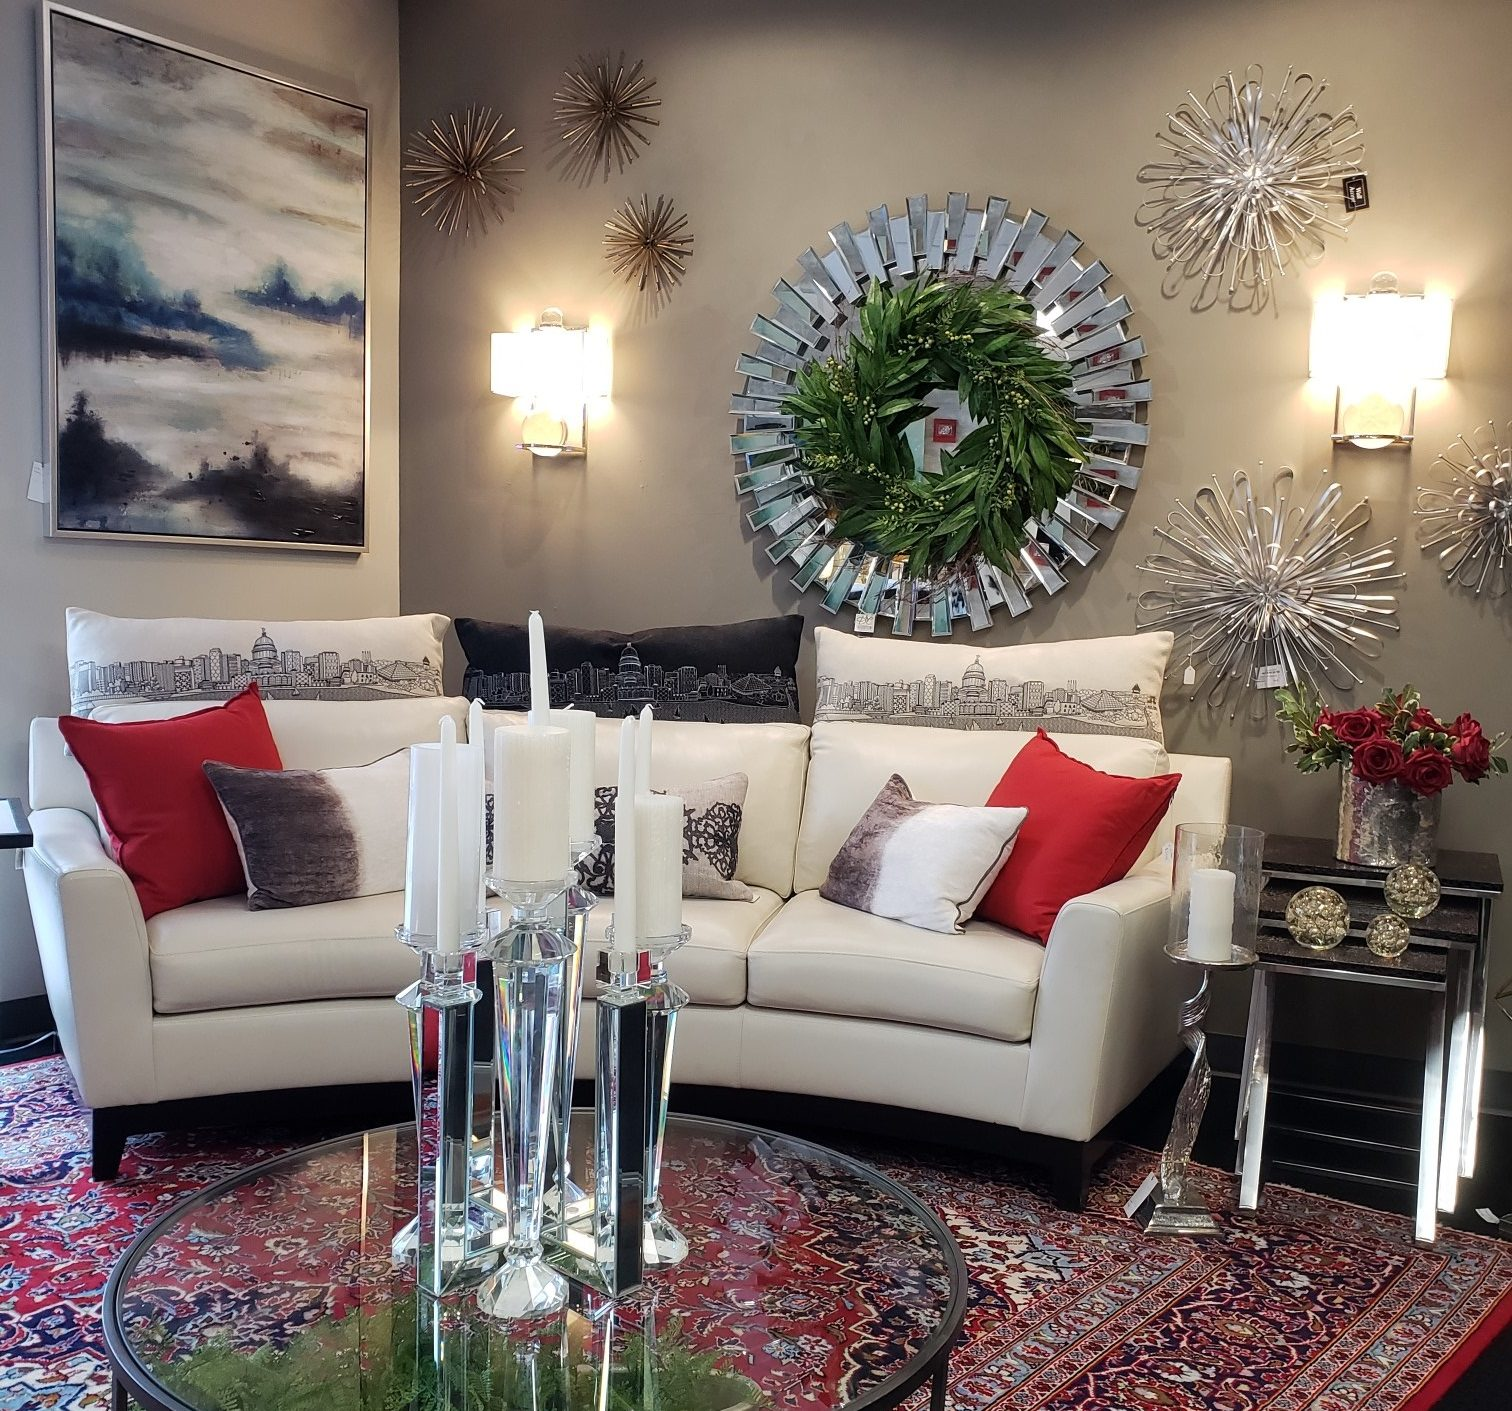 Get Inspired Visit Our Showroom Today For Interior Design Ideas